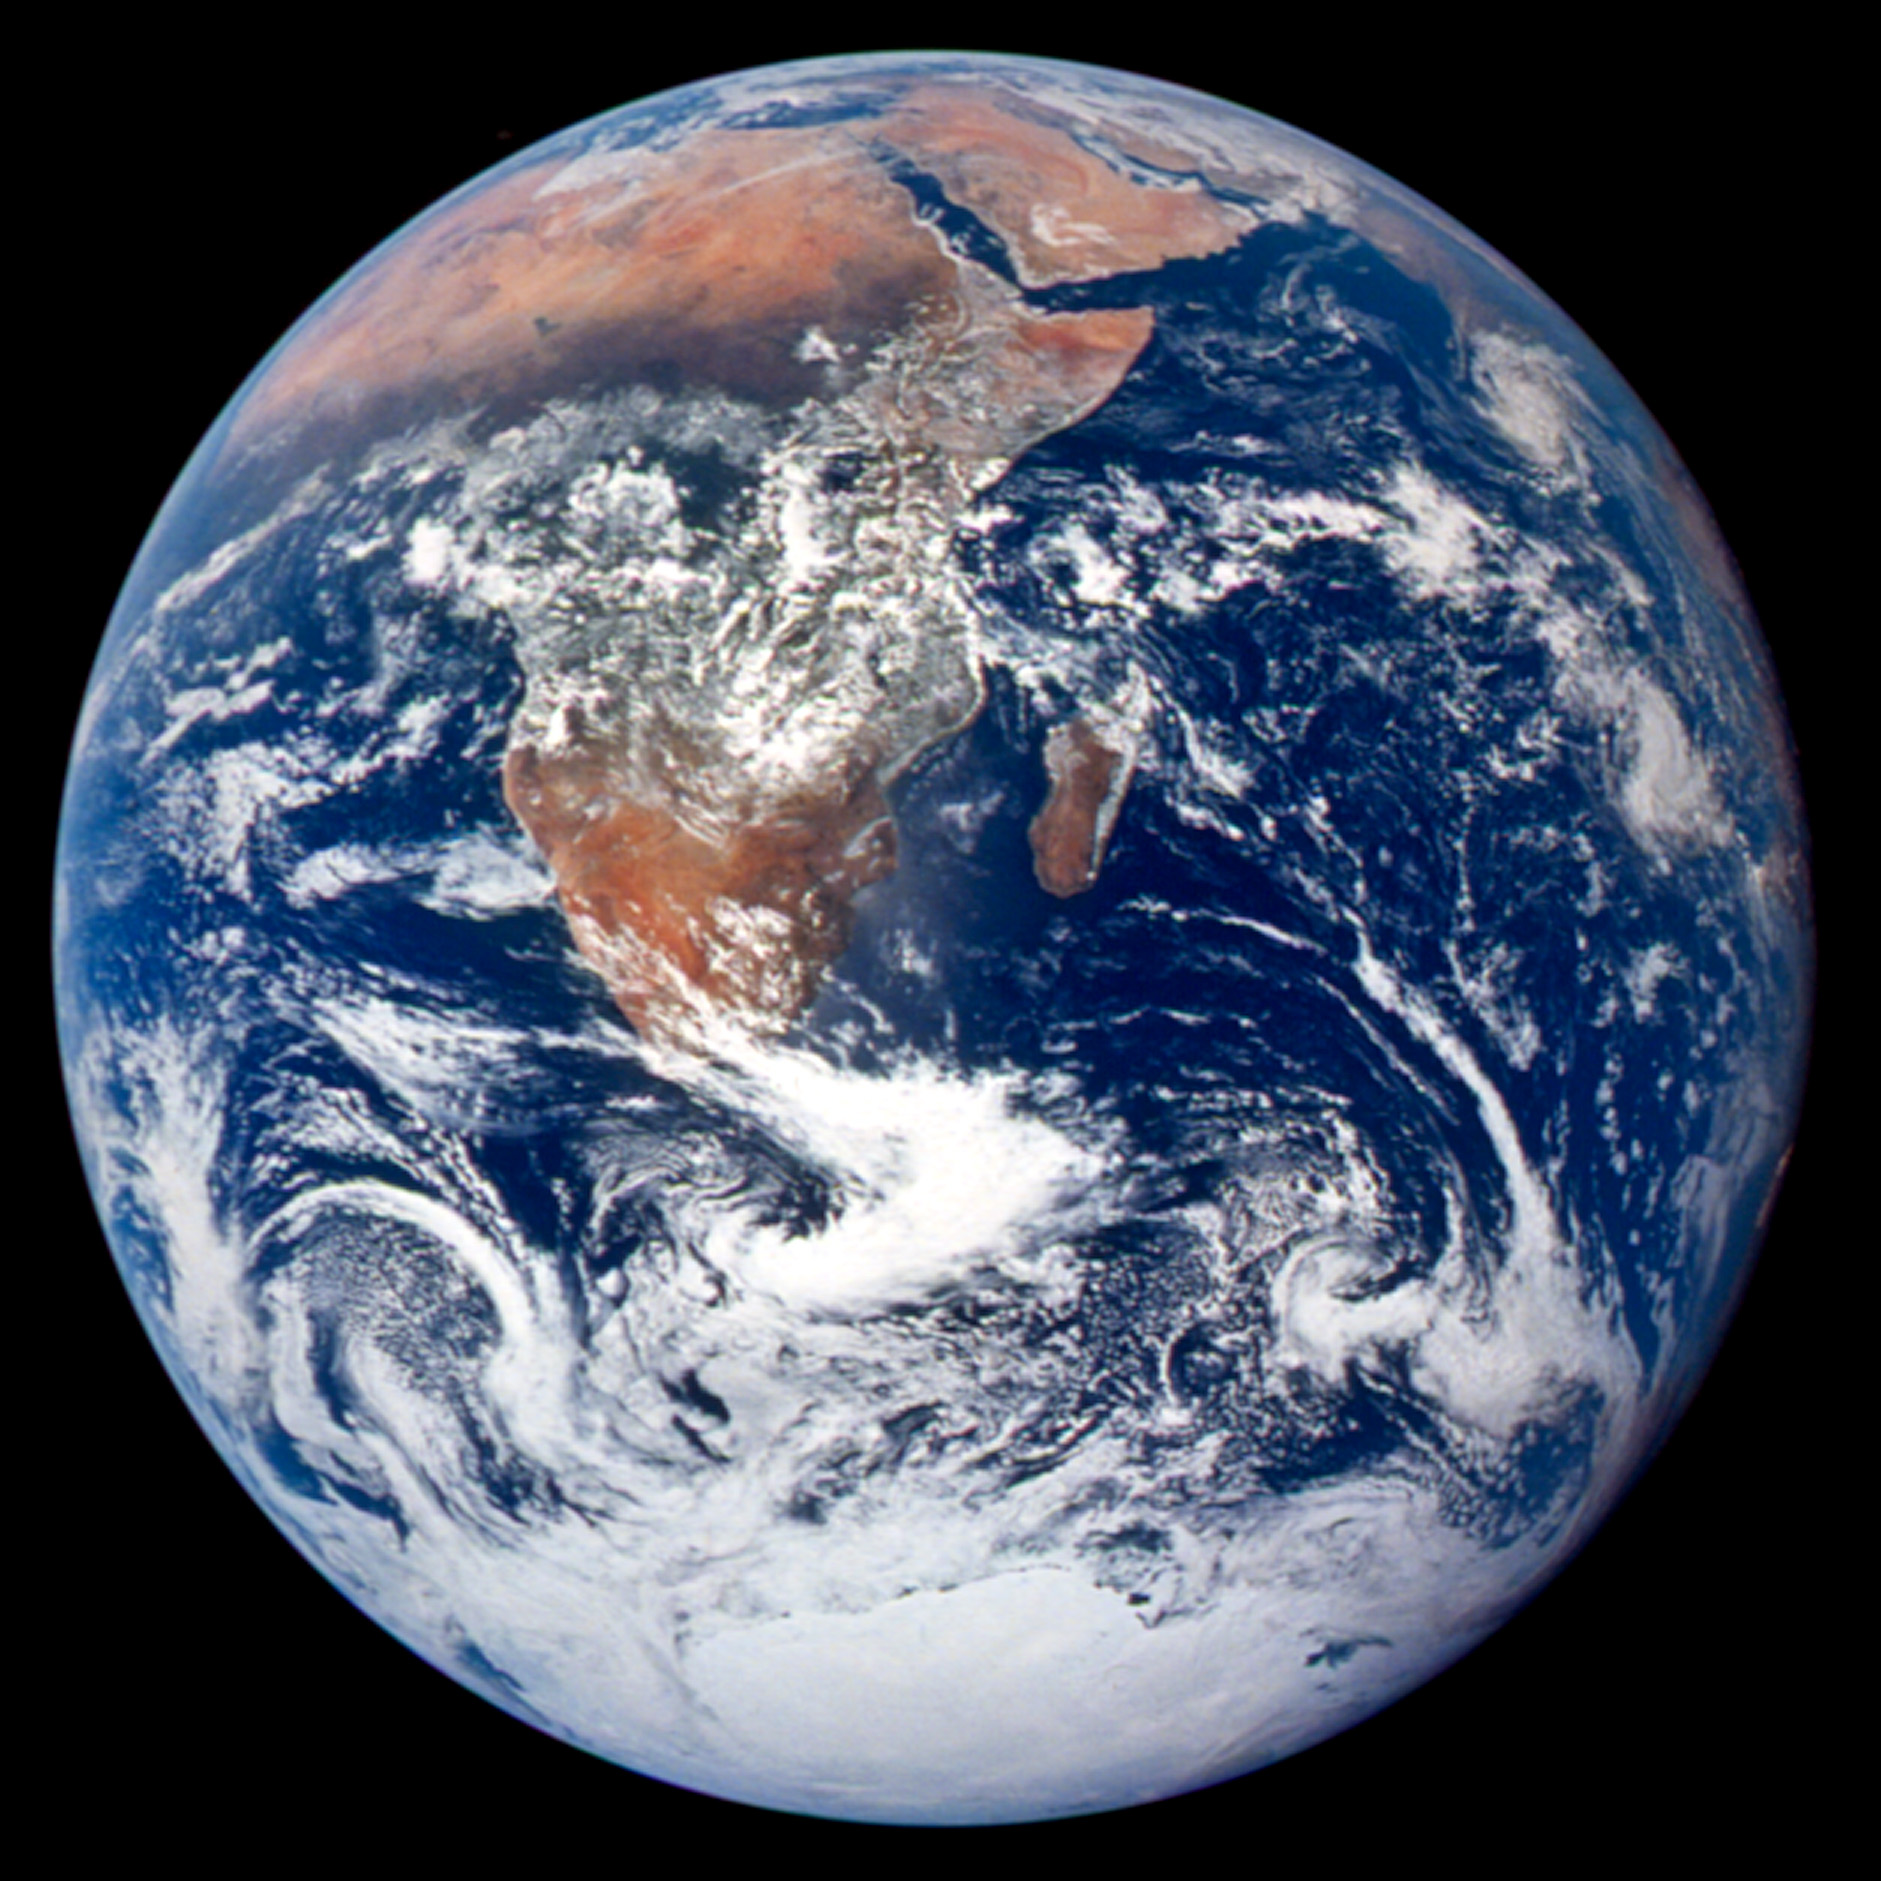 Nasa Visible Earth The Blue Marble From Apollo 17